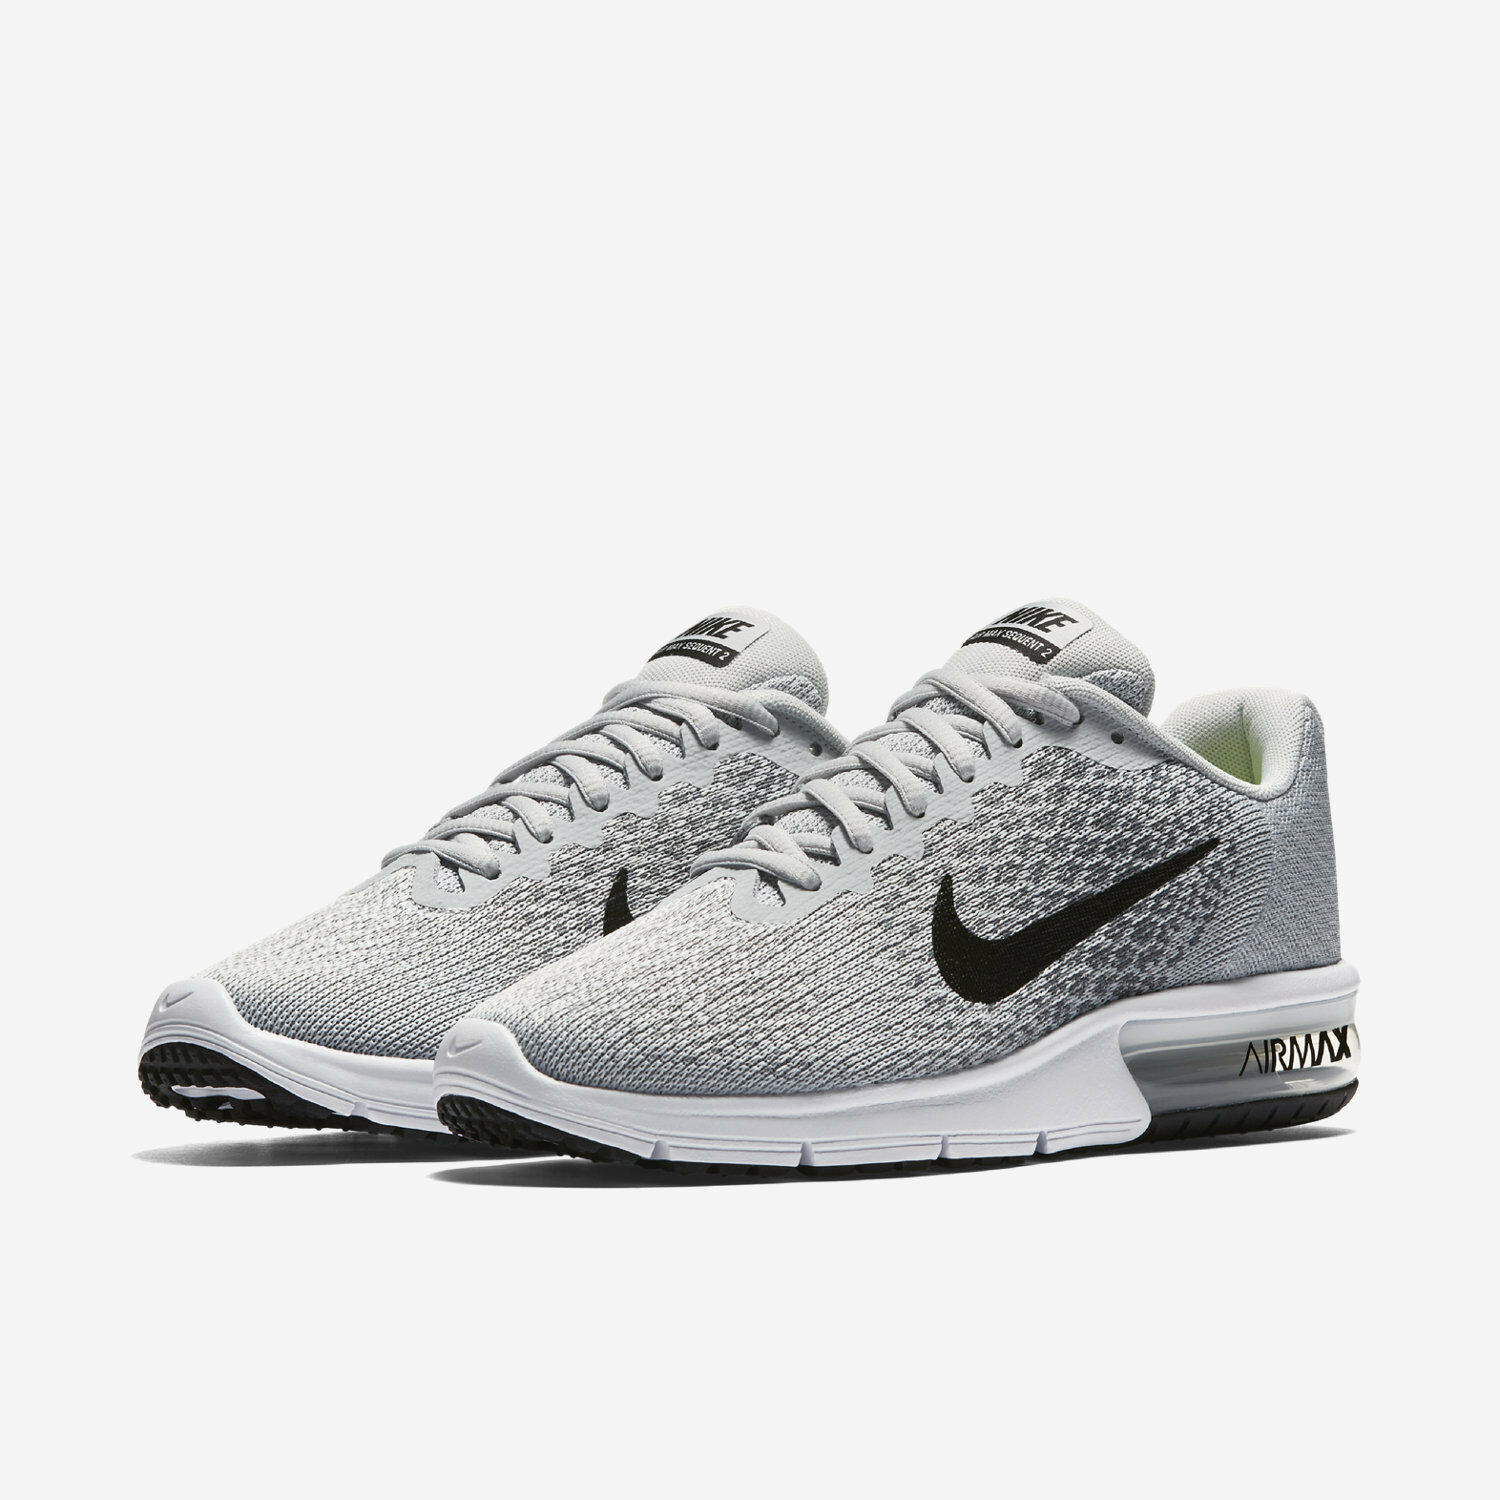 NIB Men's Nike Air Max Sequent 2 Running shoes Choose Size Wht Gry